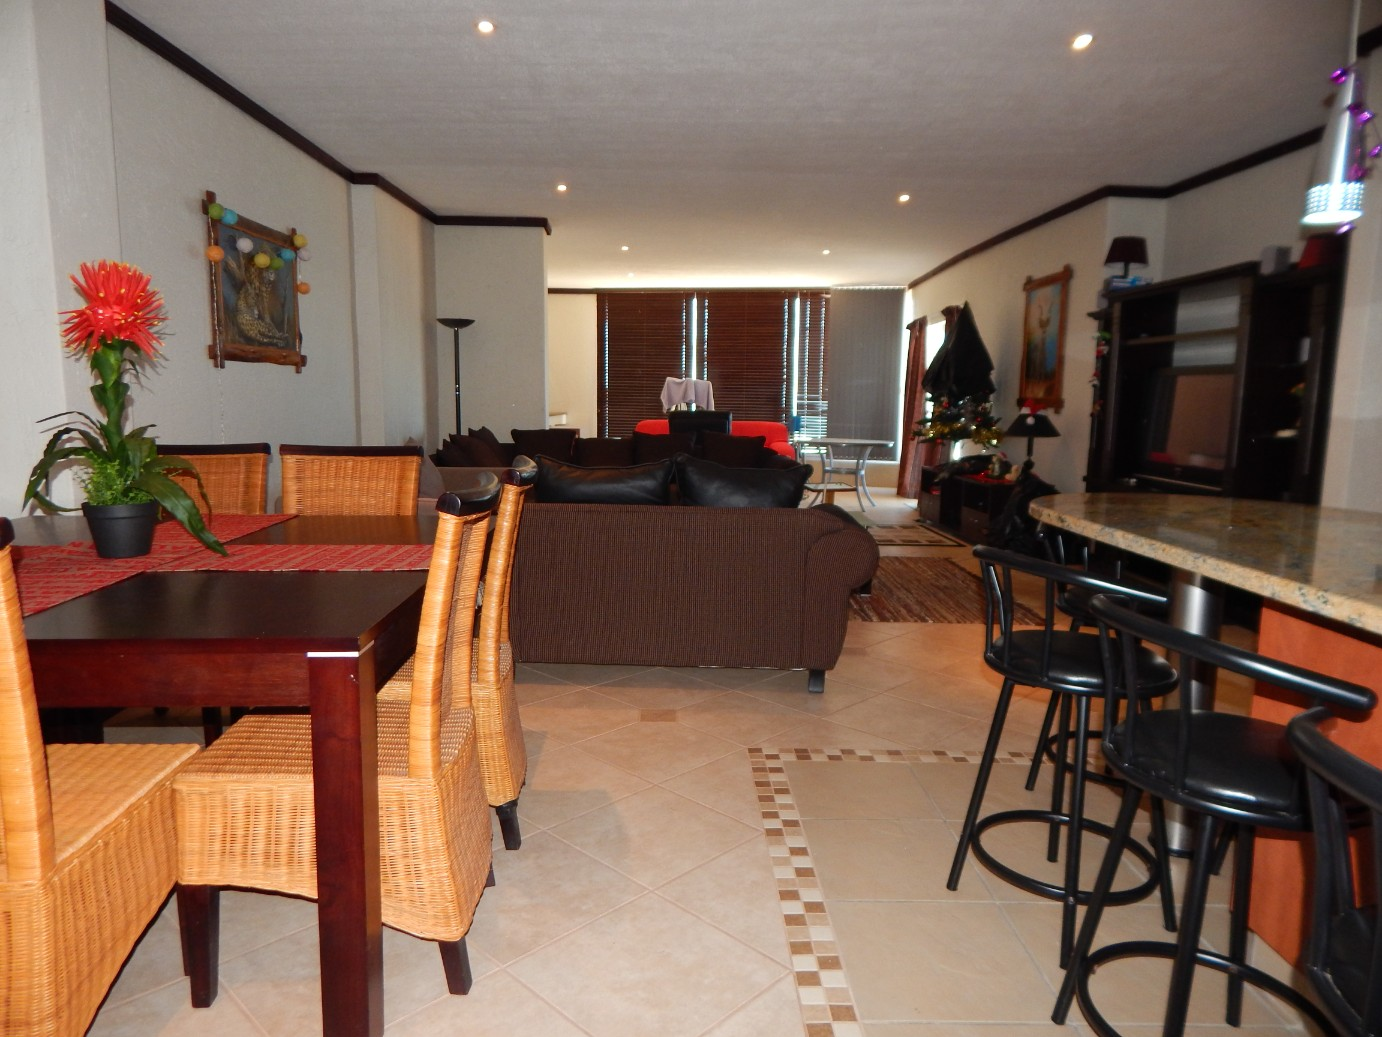 3 Bedroom Apartment for sale in Diaz Beach ENT0043723 : photo#2